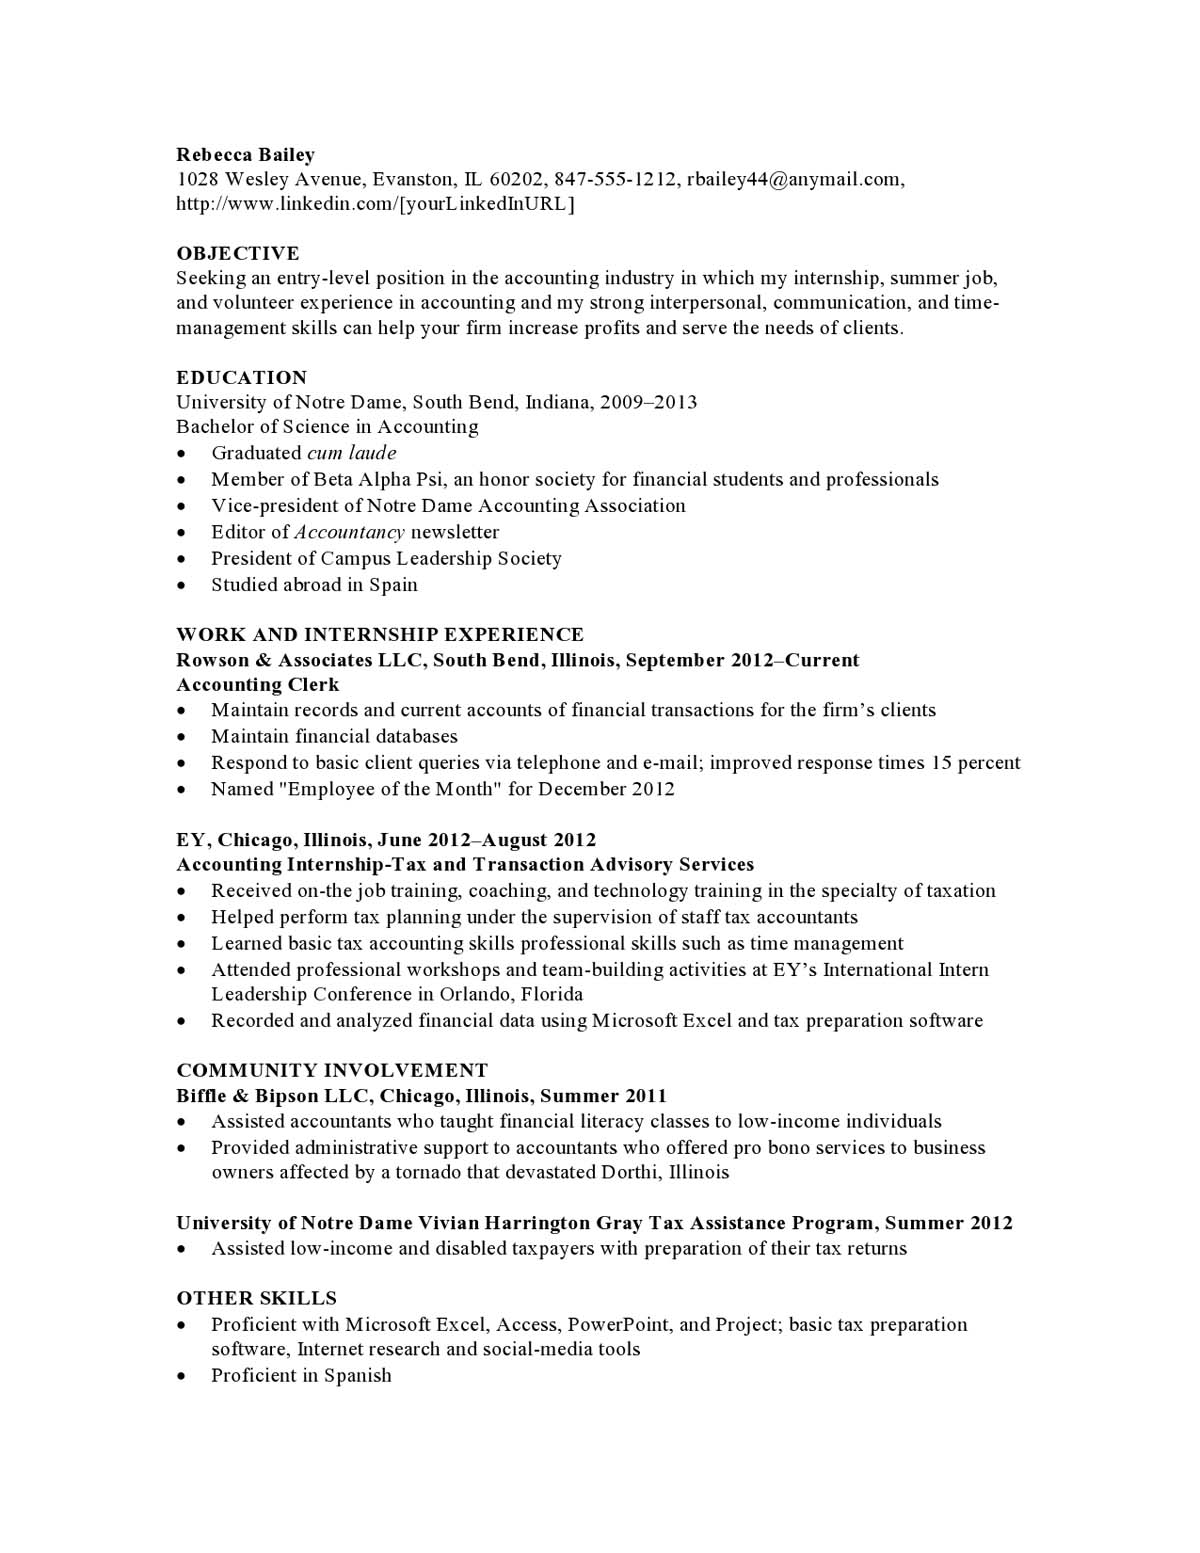 resume samples templates examples vault format and crescoact19 hvac sample for social Resume Resume Format And Examples